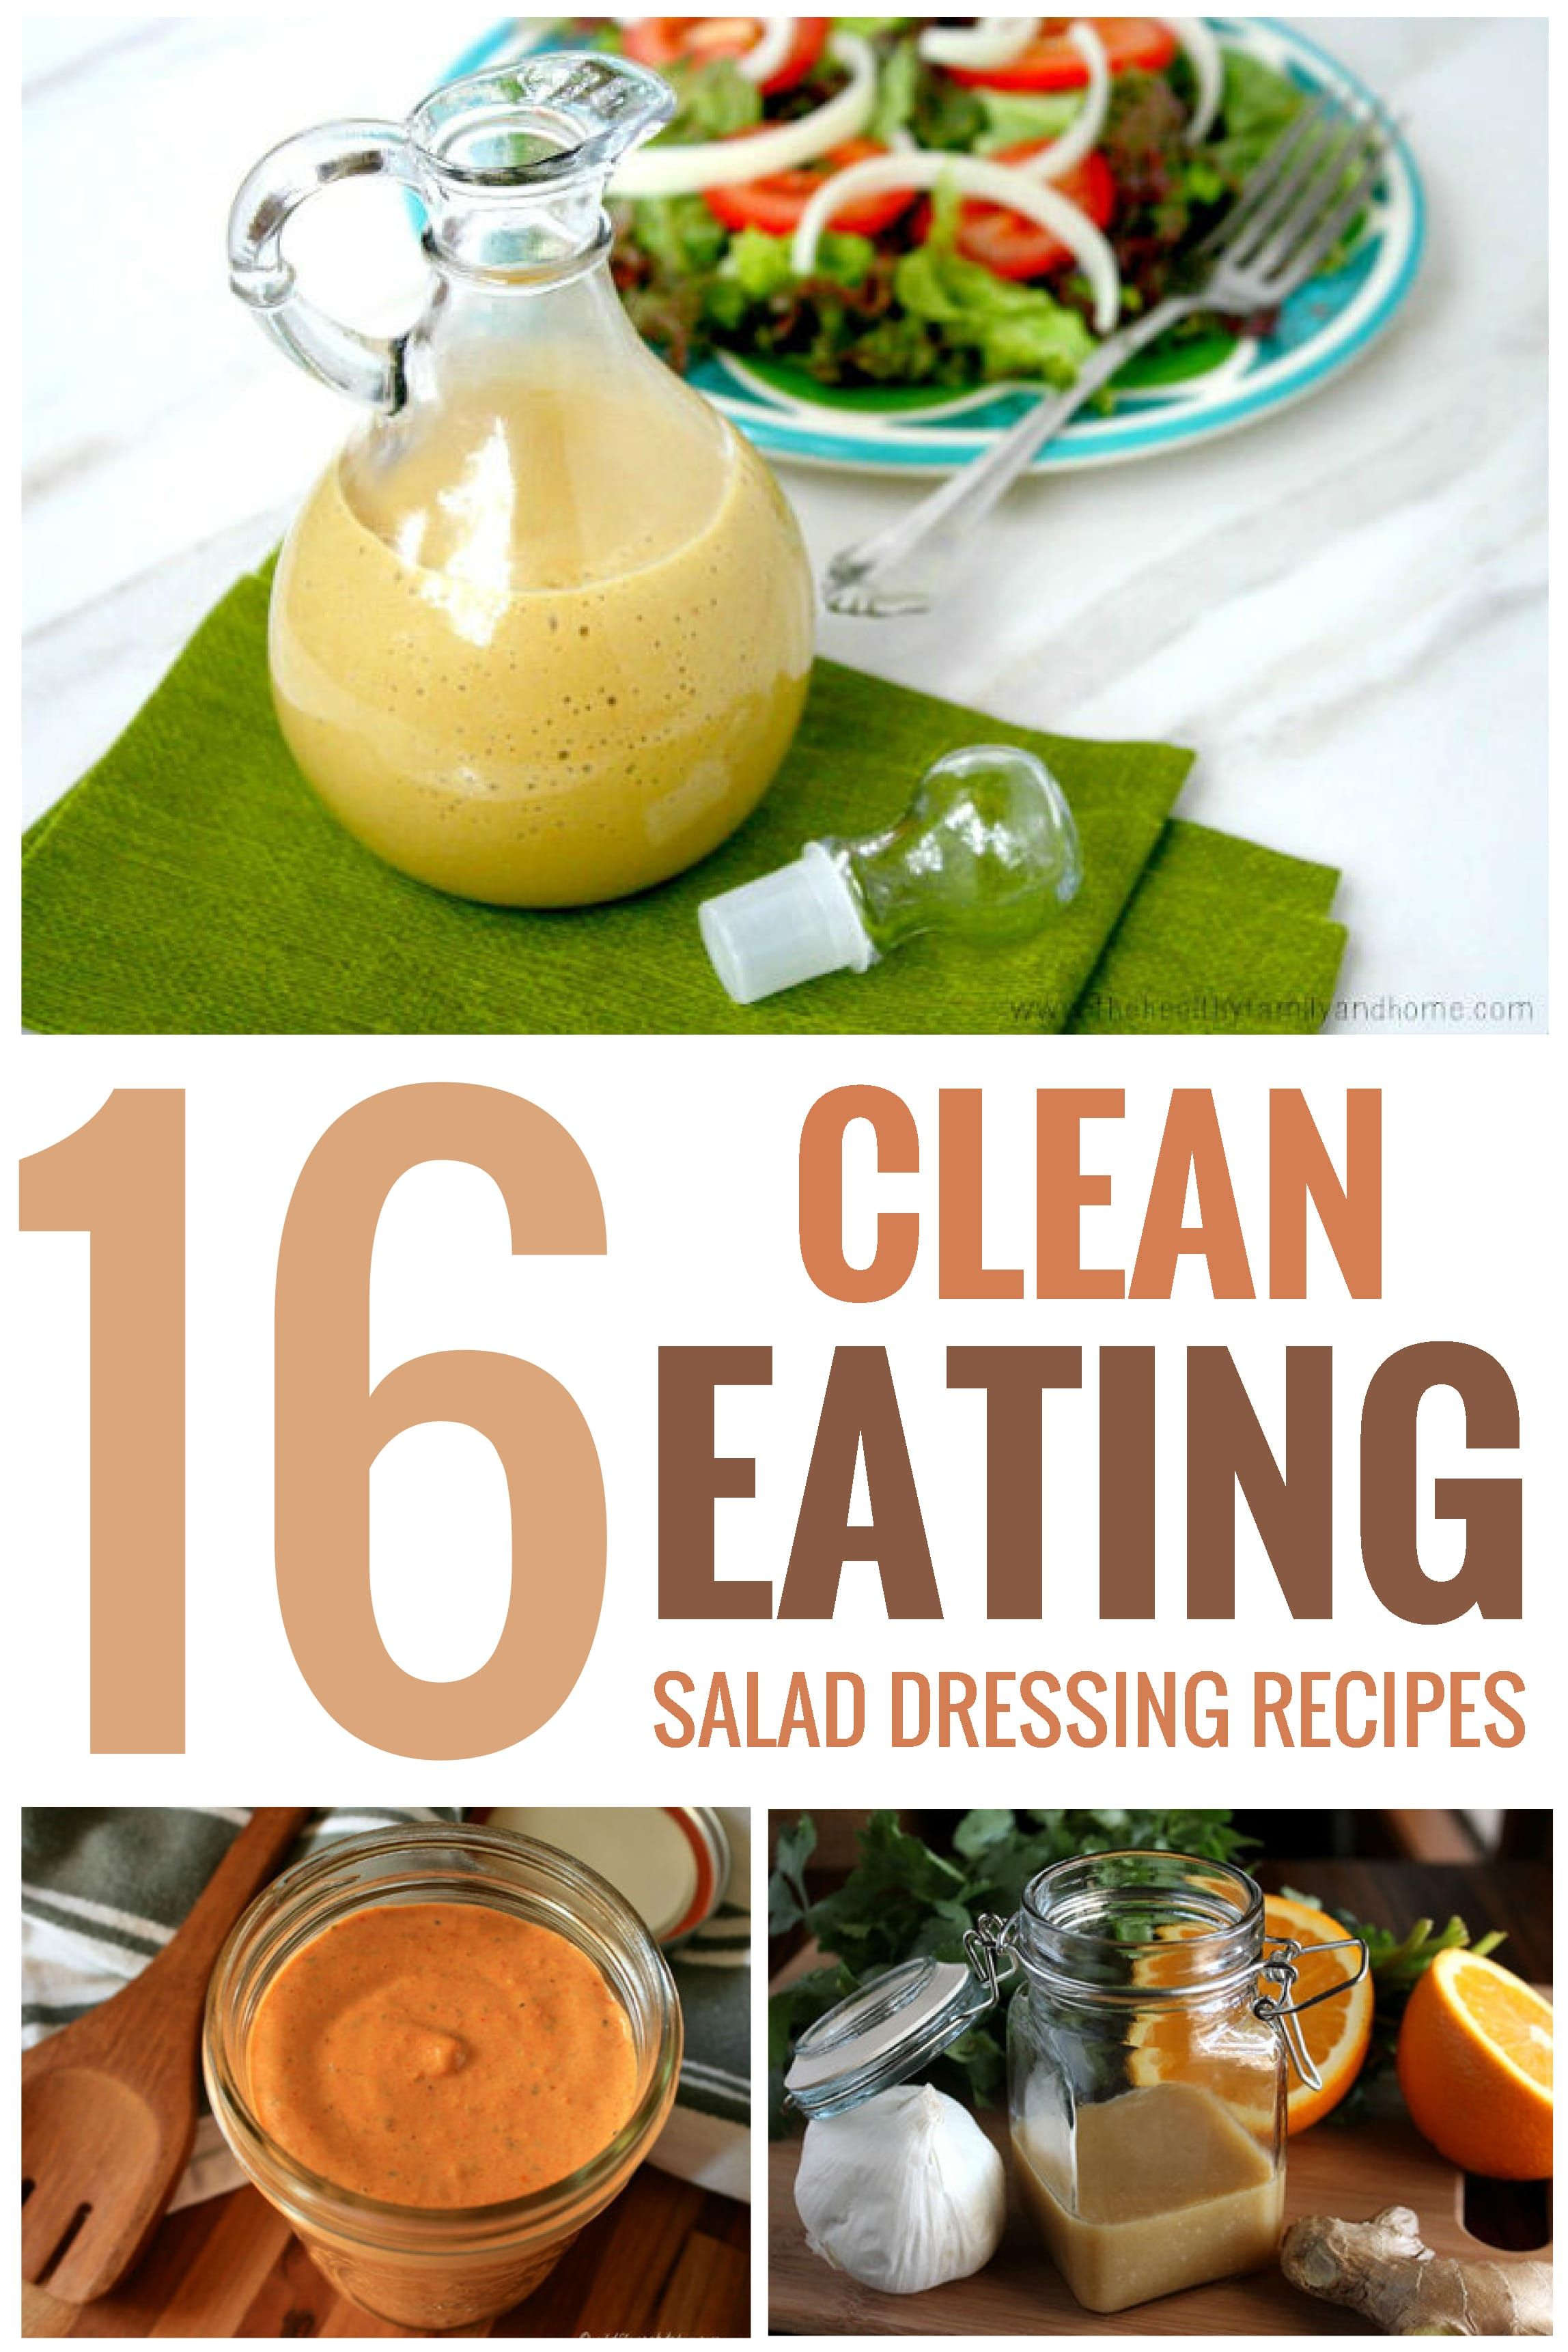 I Love Salads But Finding Healthy Salad Dressings Can Be A